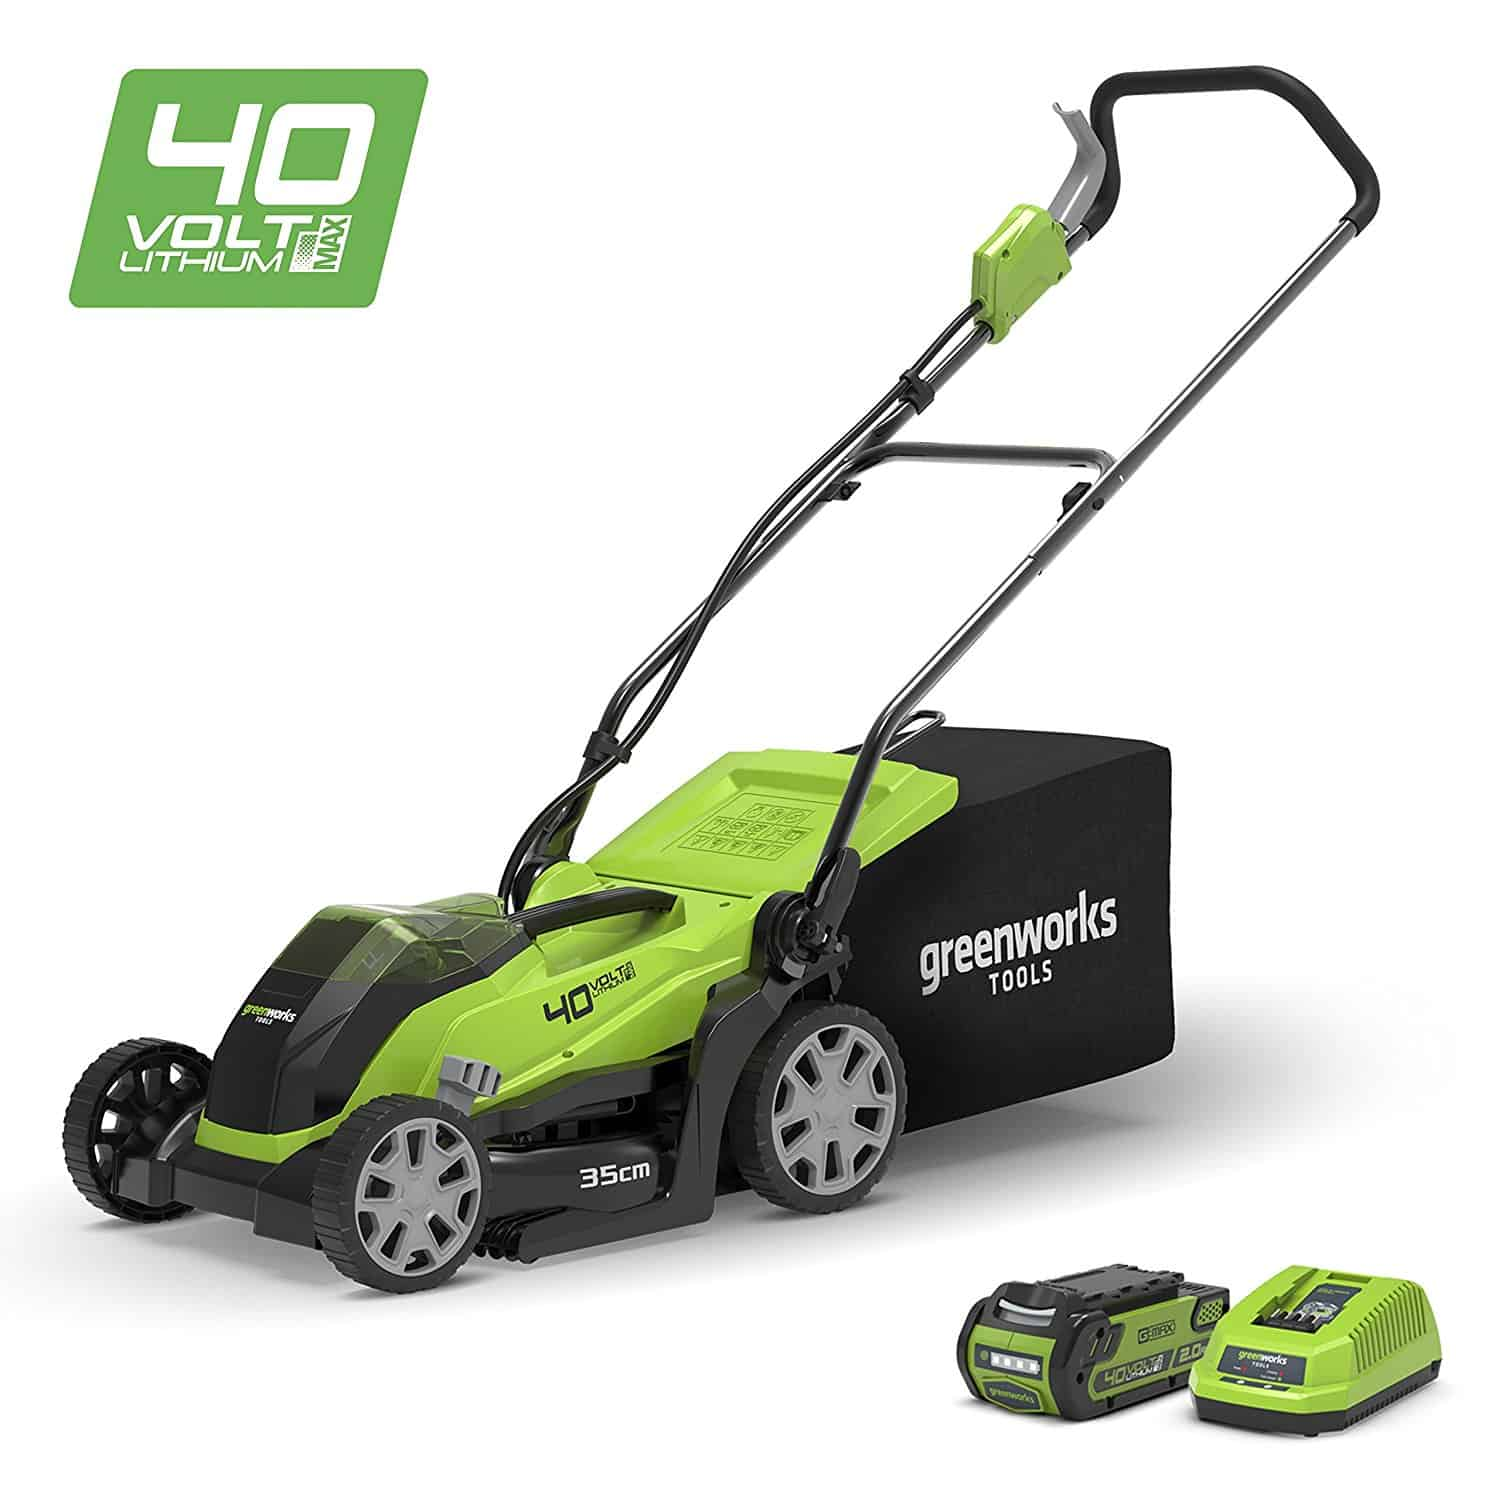 Greenworks 14 Inch 40v Cordless Lawn Mower Review